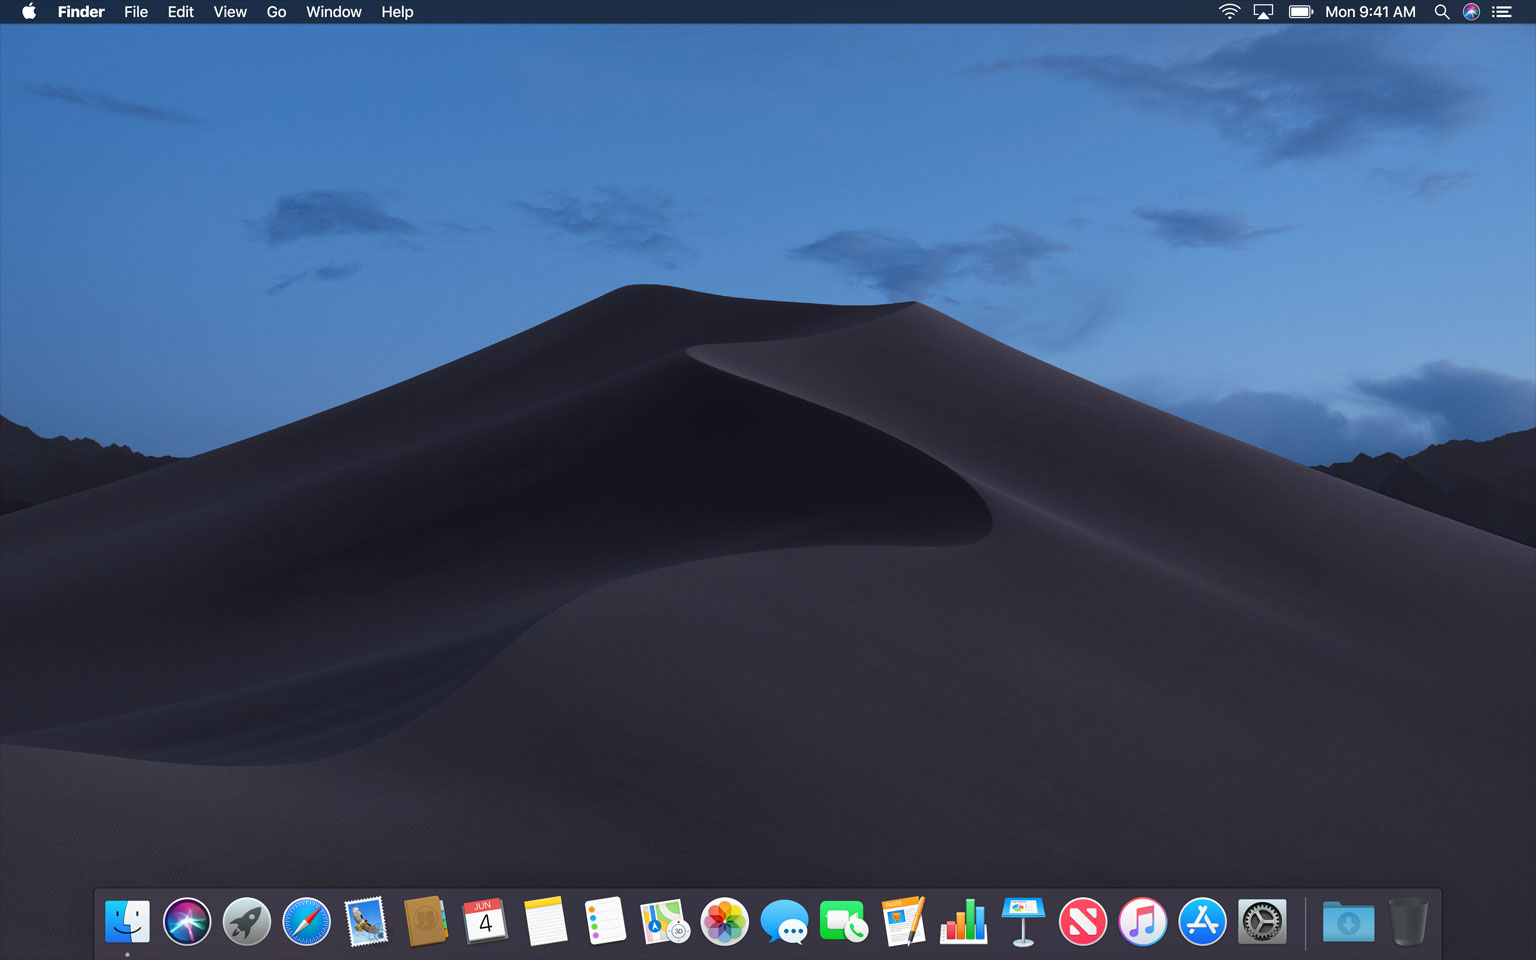 Download-sfondi-macOS-Mojave-iOS-12